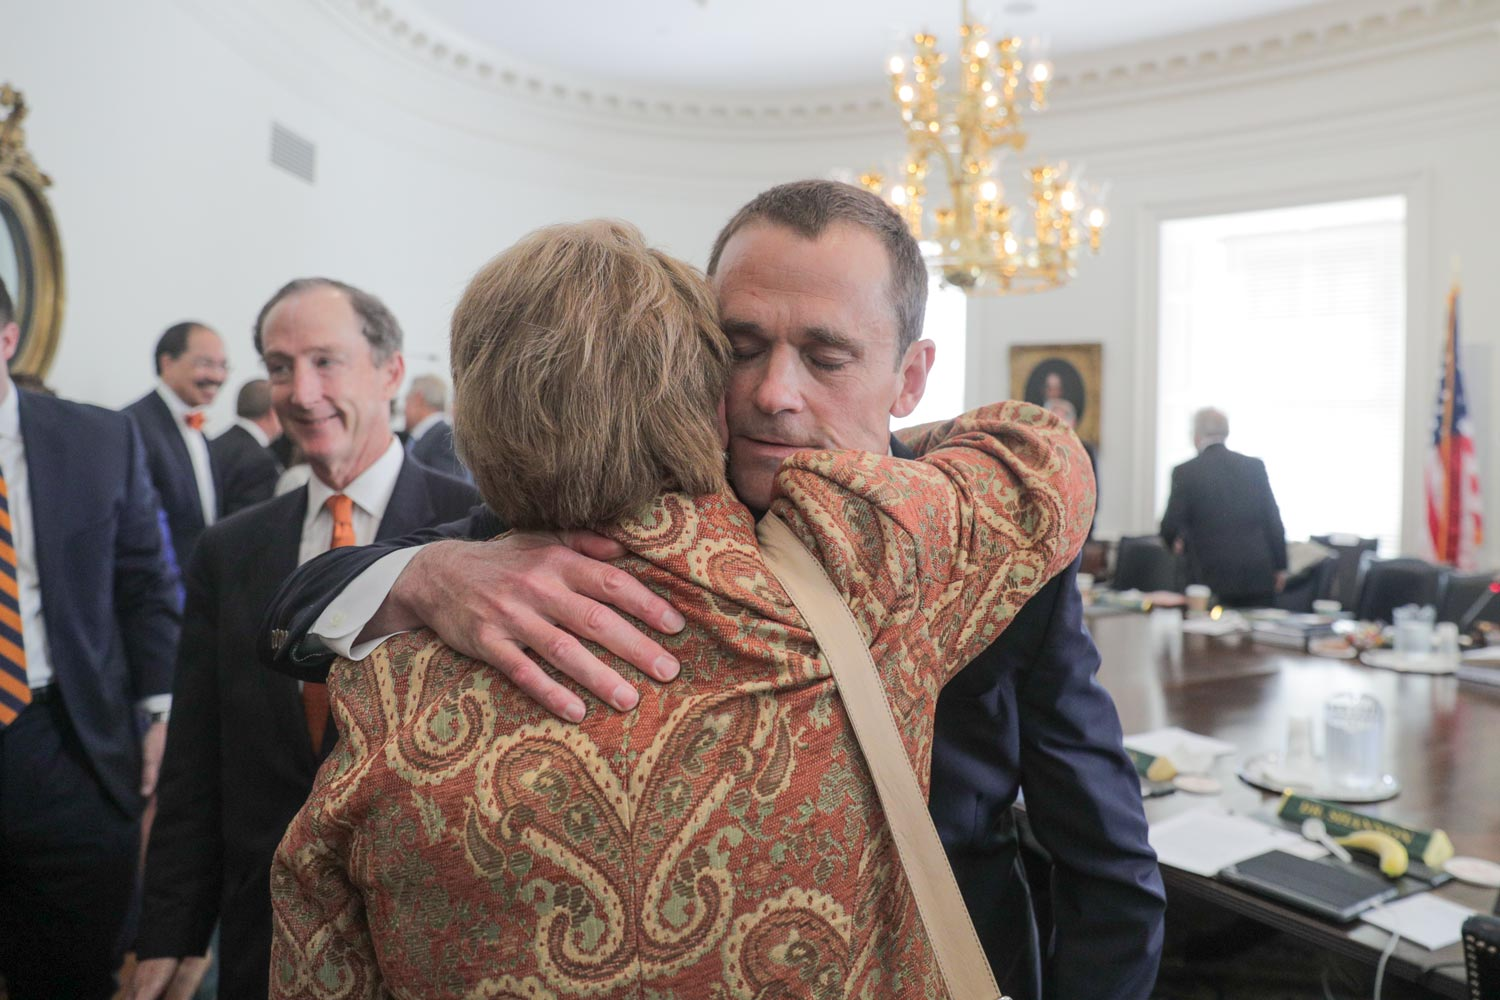 UVA President Teresa A. Sullivan embraced James Ryan shortly after he was named her successor on Friday. (Photo by Sanjay Suchak, University Communications)